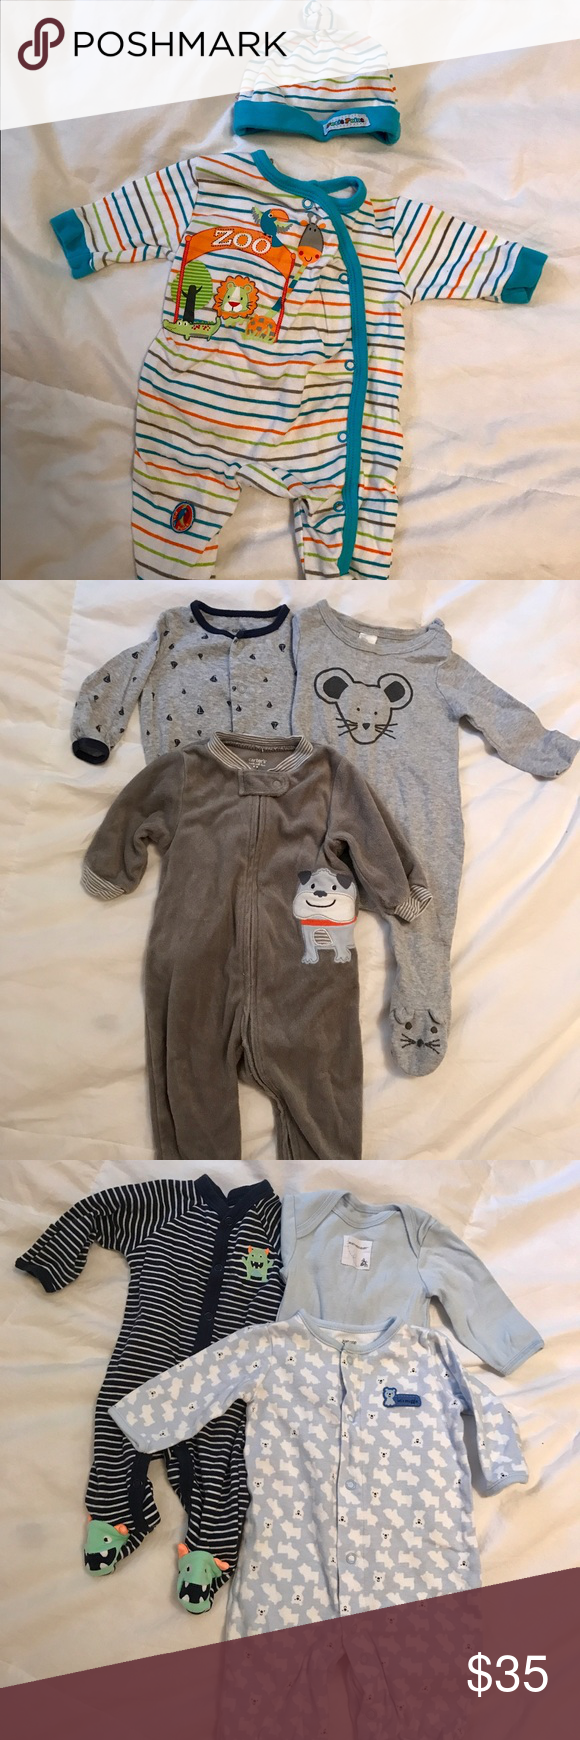 8 Pieces New Born Baby Boy Clothing 0 3 Months Baby Boy Clothes